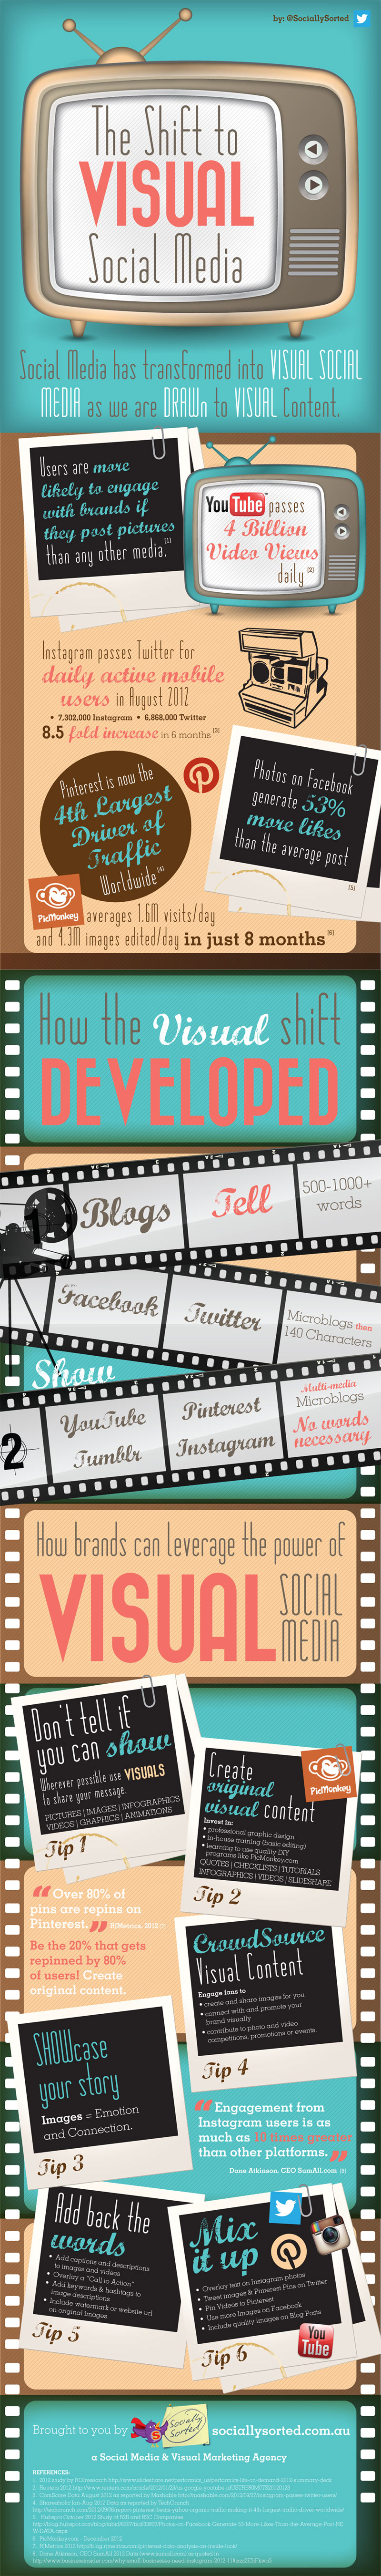 6 Tips for Being More Visual With Social Media (Infographic)